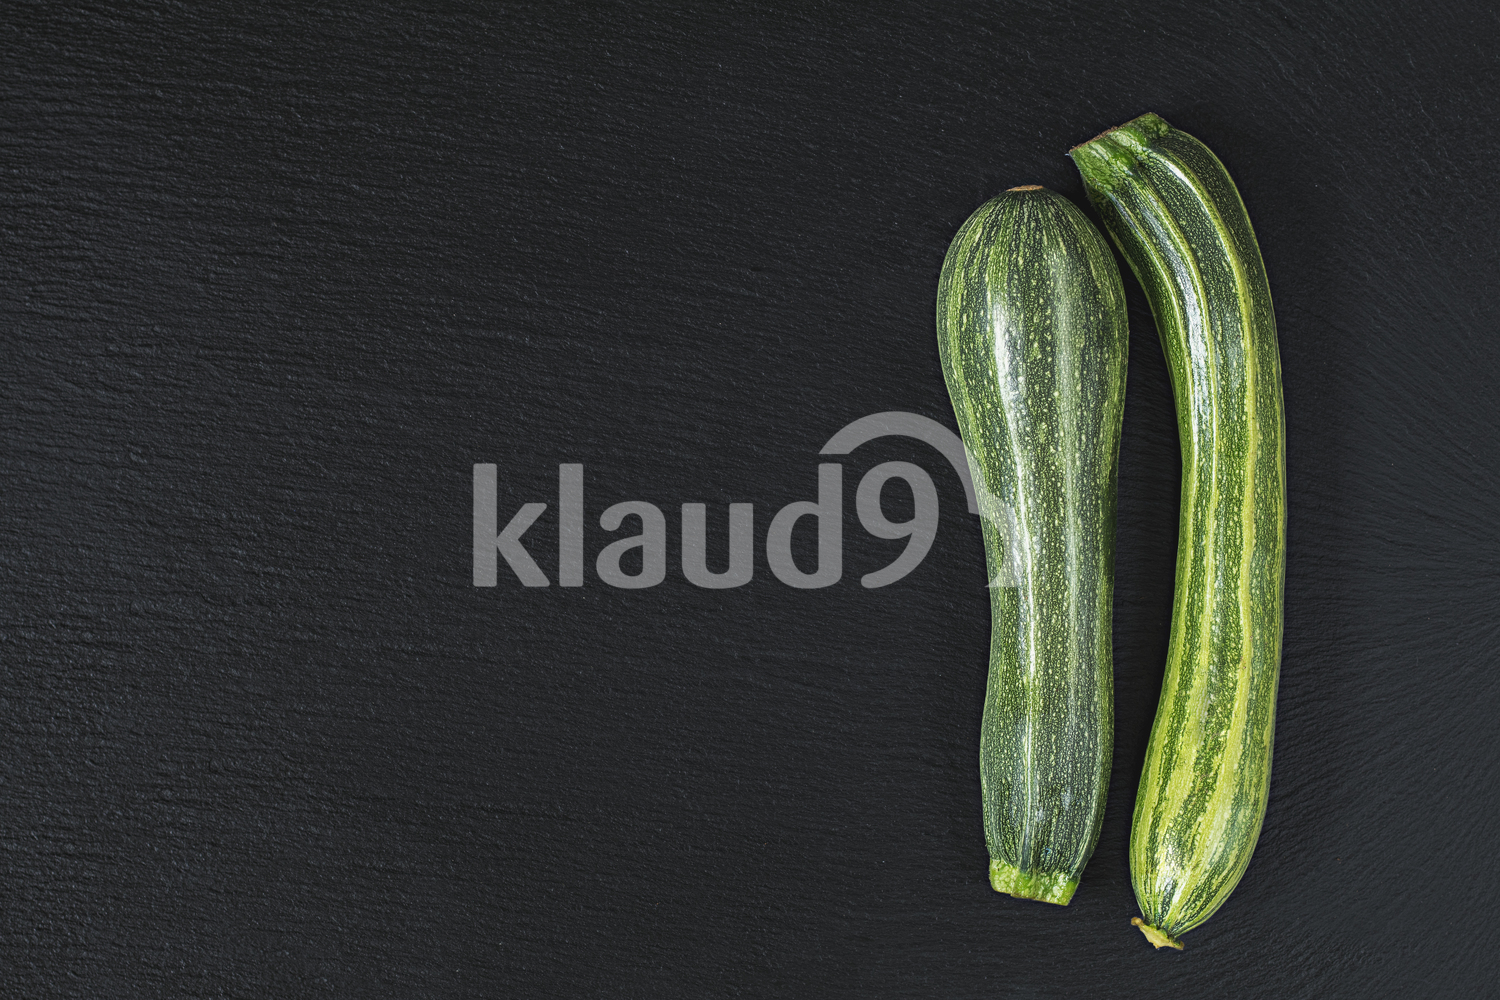 Two striped fresh green zucchini on a black stone surface